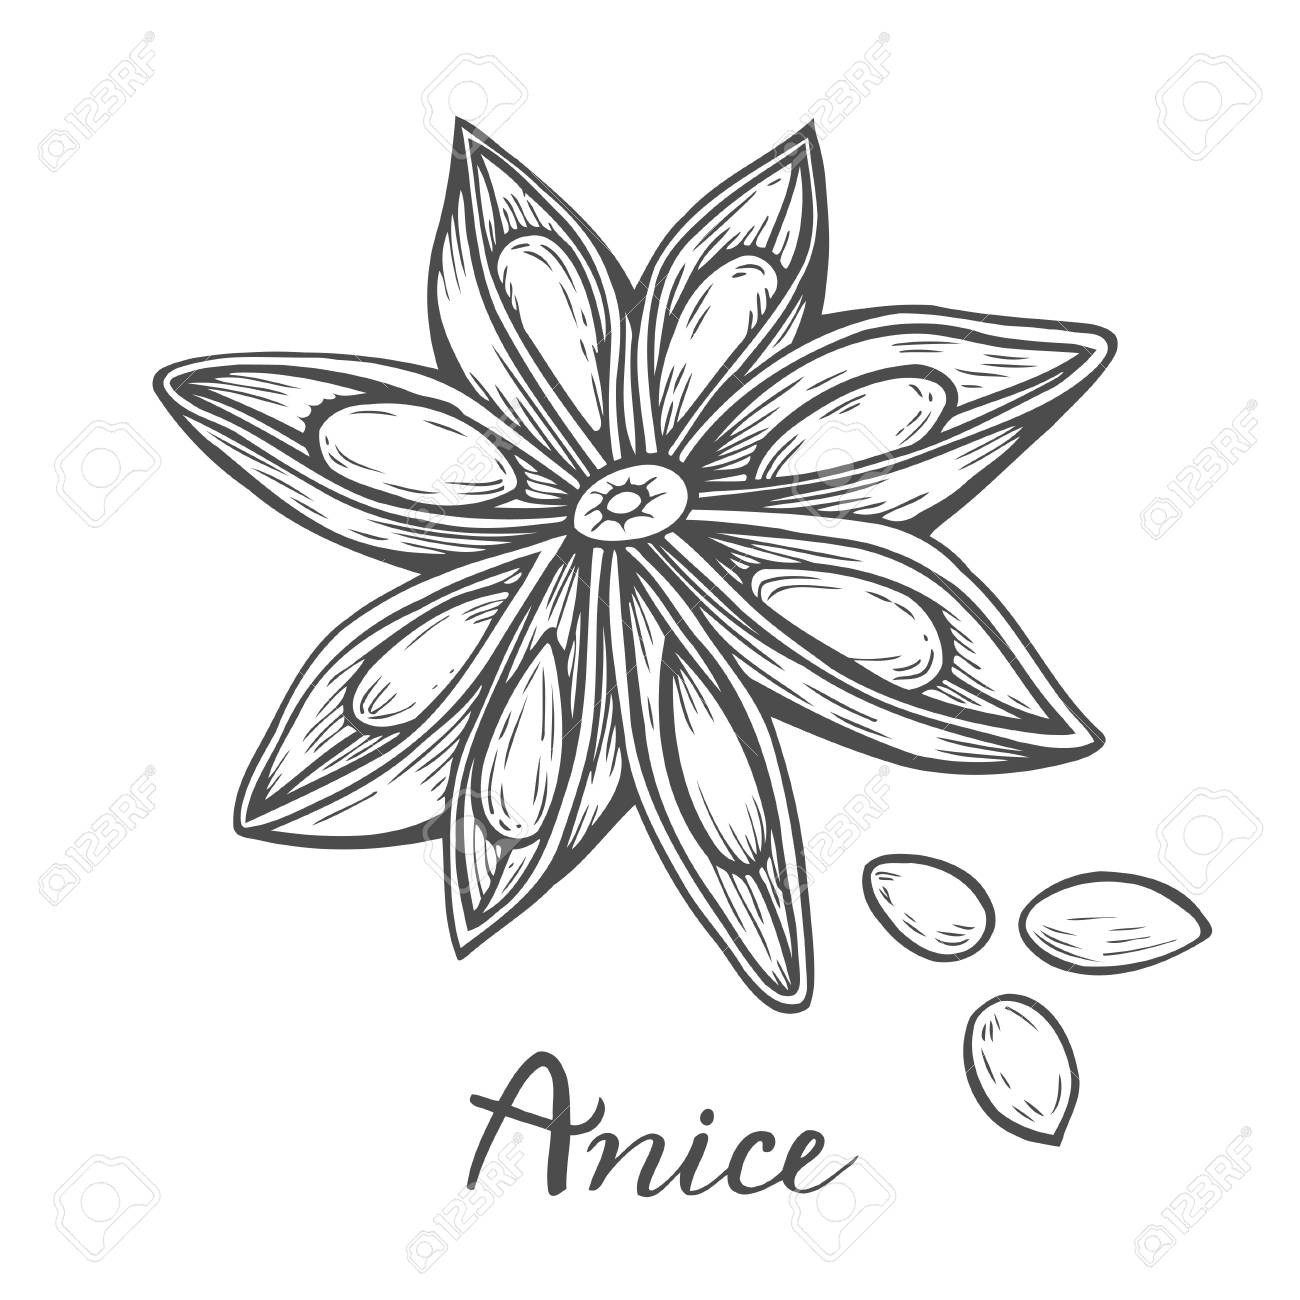 1300x1300 Hand Drawn Anise Star Flower Seed Plant Sketch Illustration